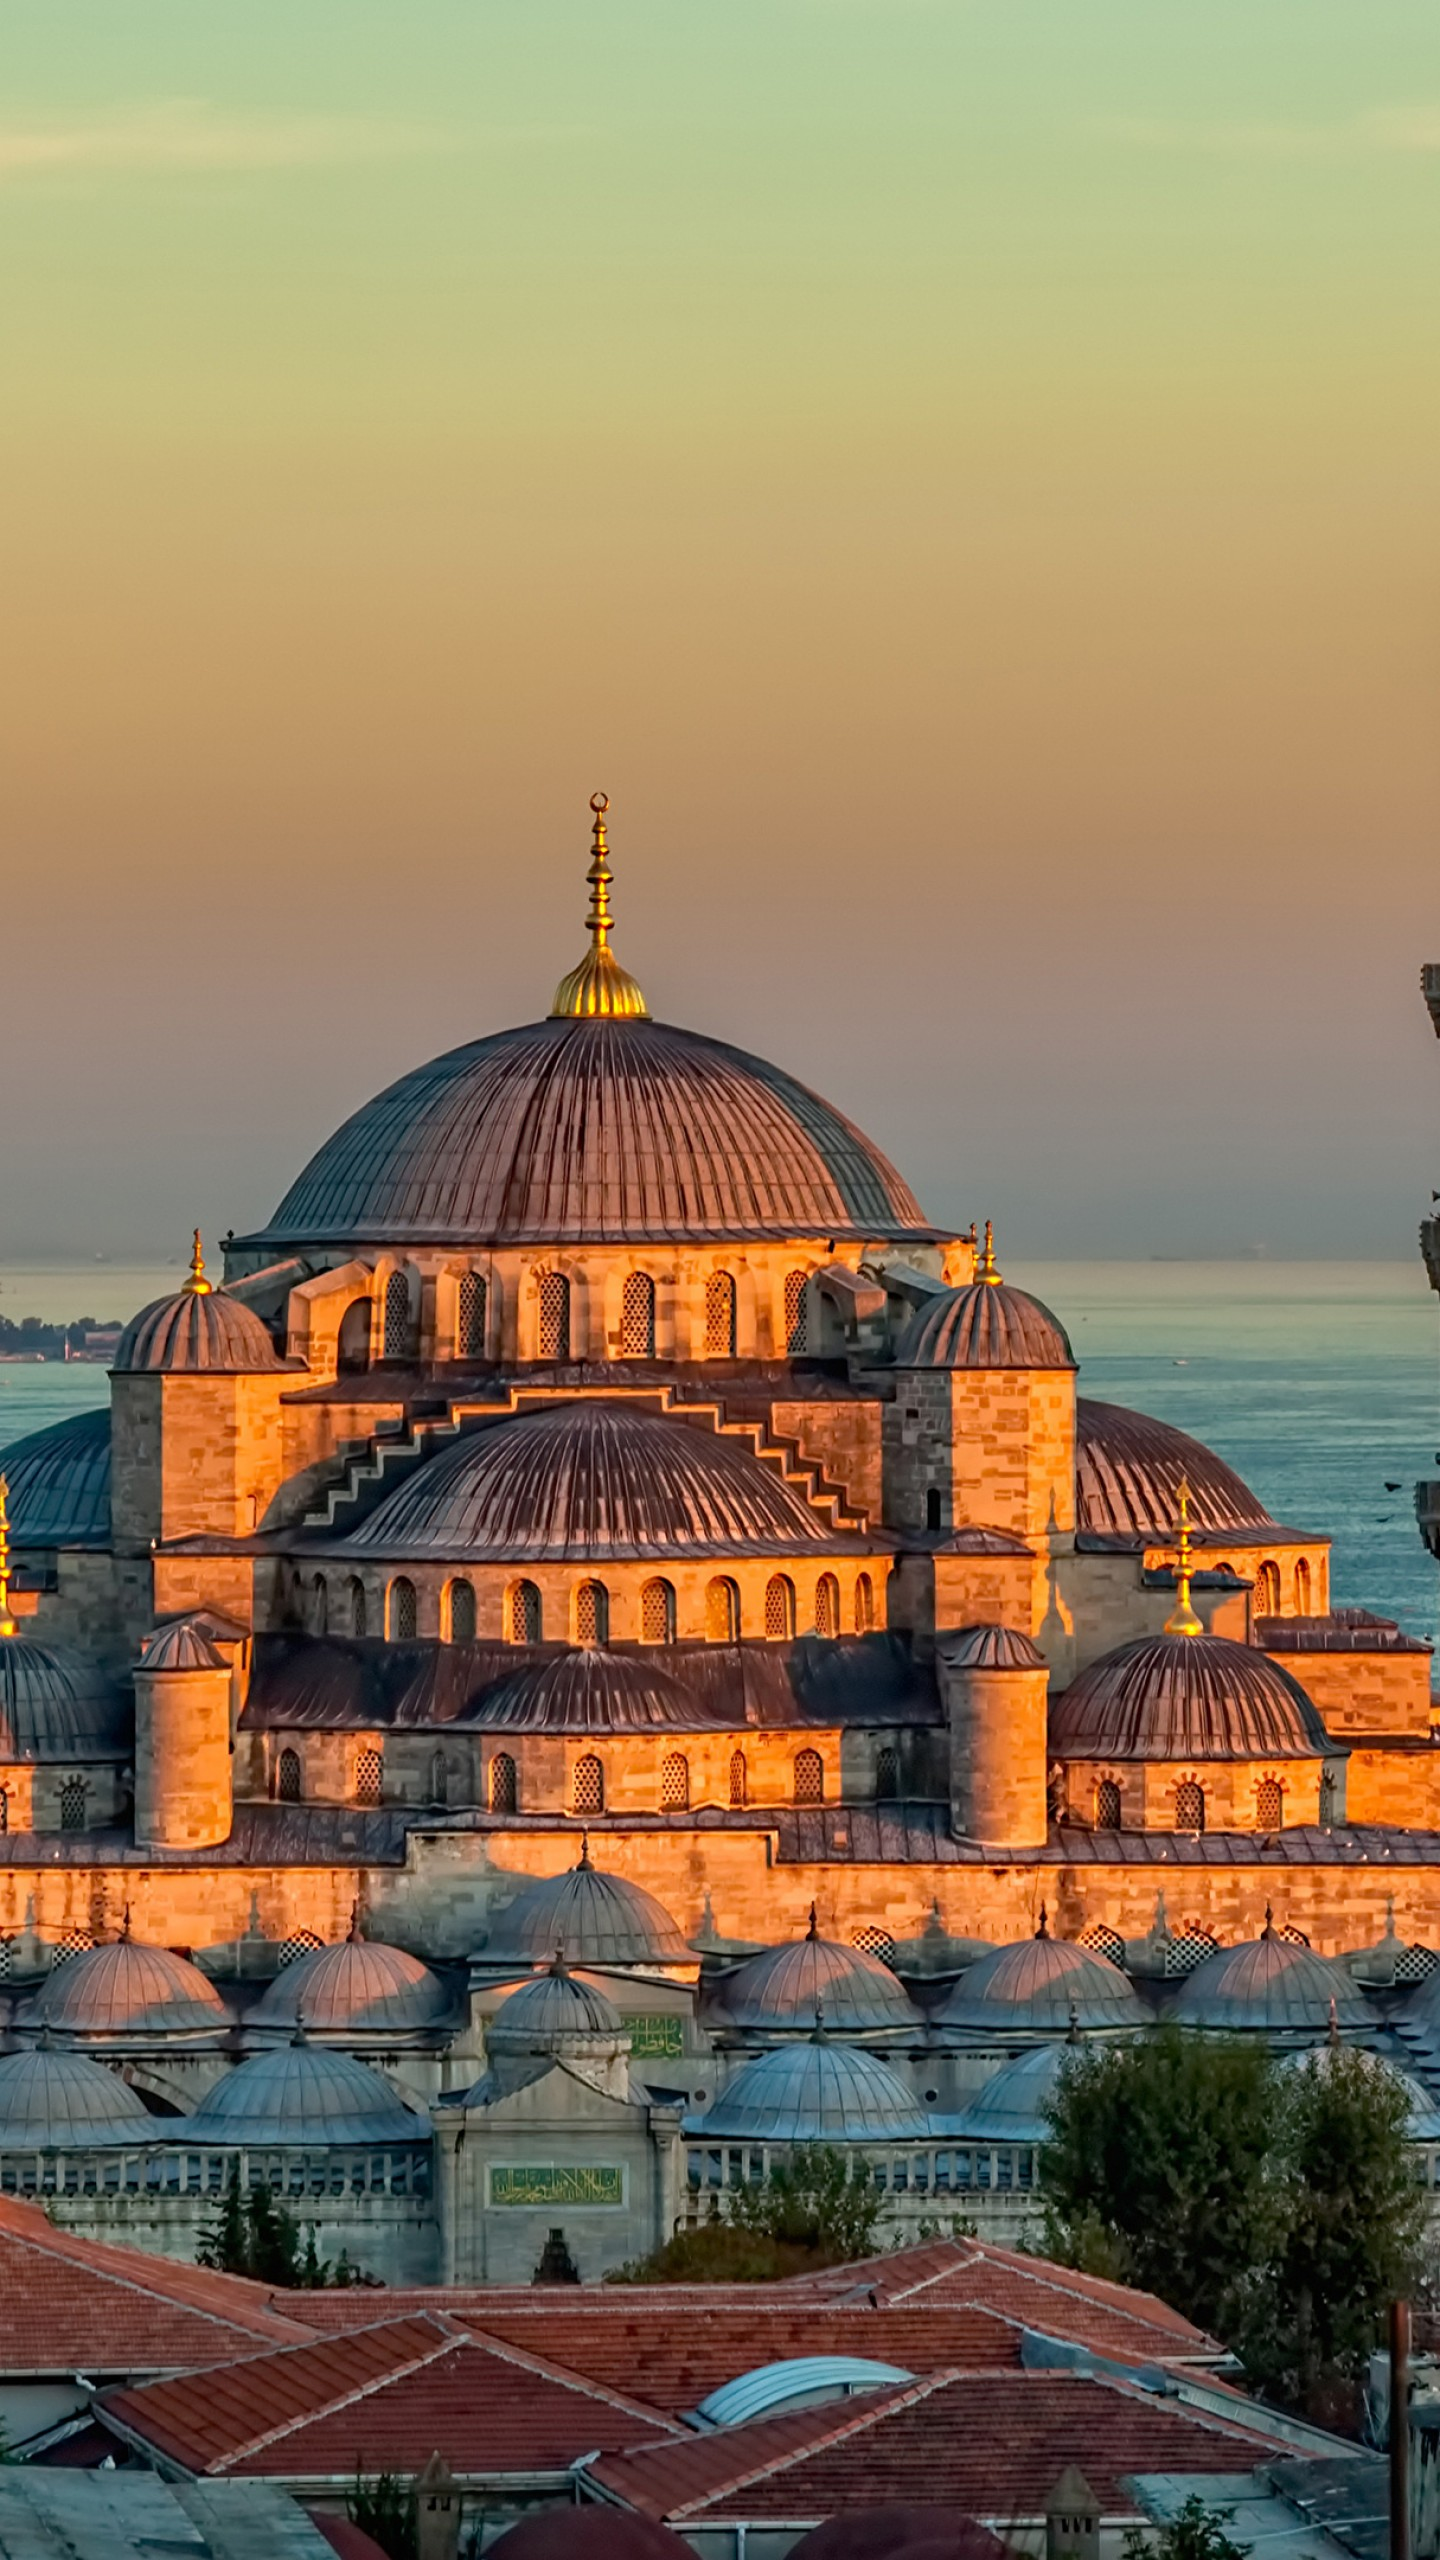 Drawing Wallpaper Iphone Wallpaper Sultan Ahmed Mosque Turkey Istanbul Sunrise